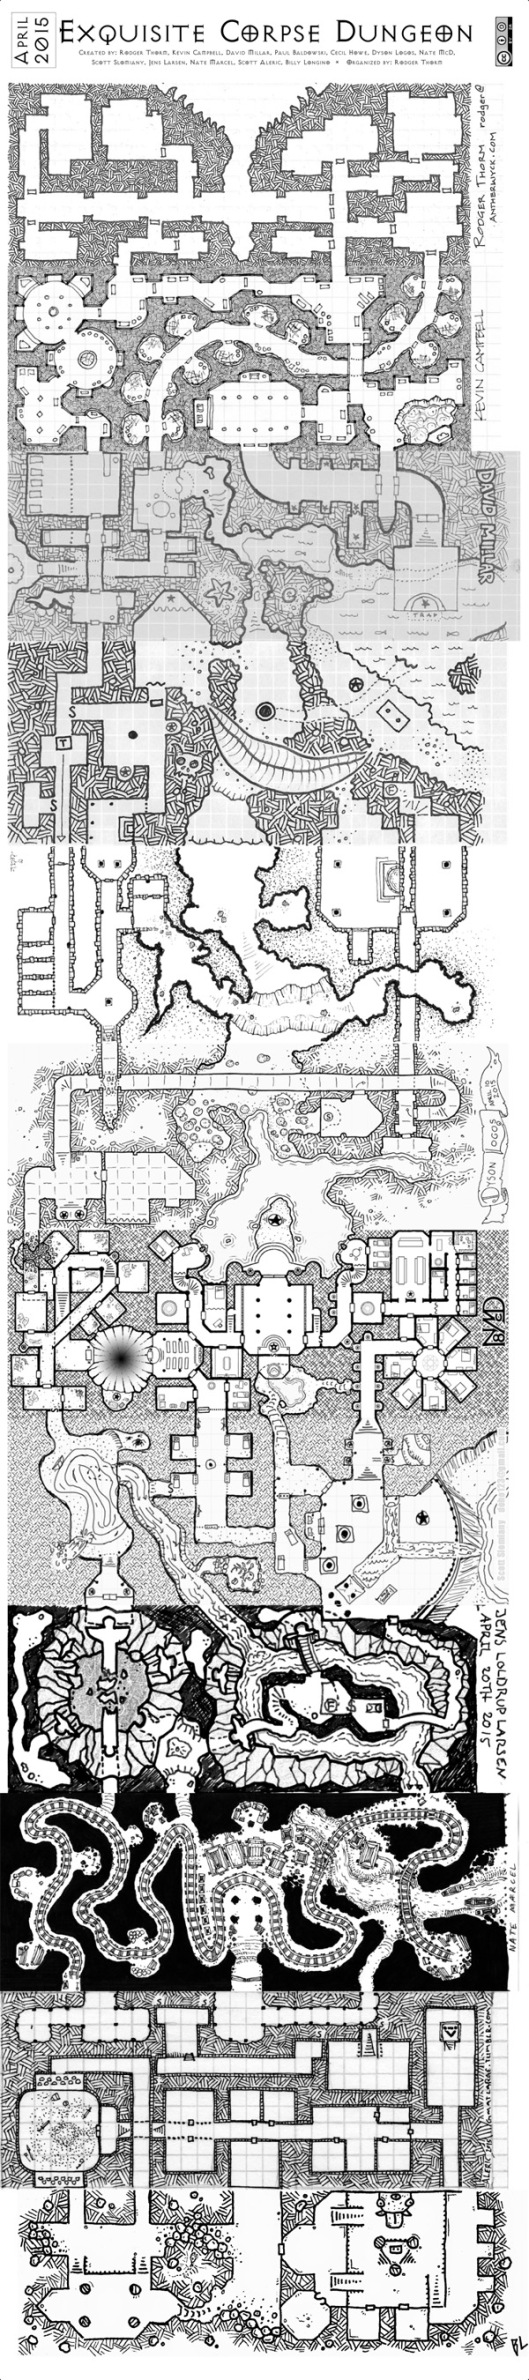 The Exquisite Corpse Dungeon